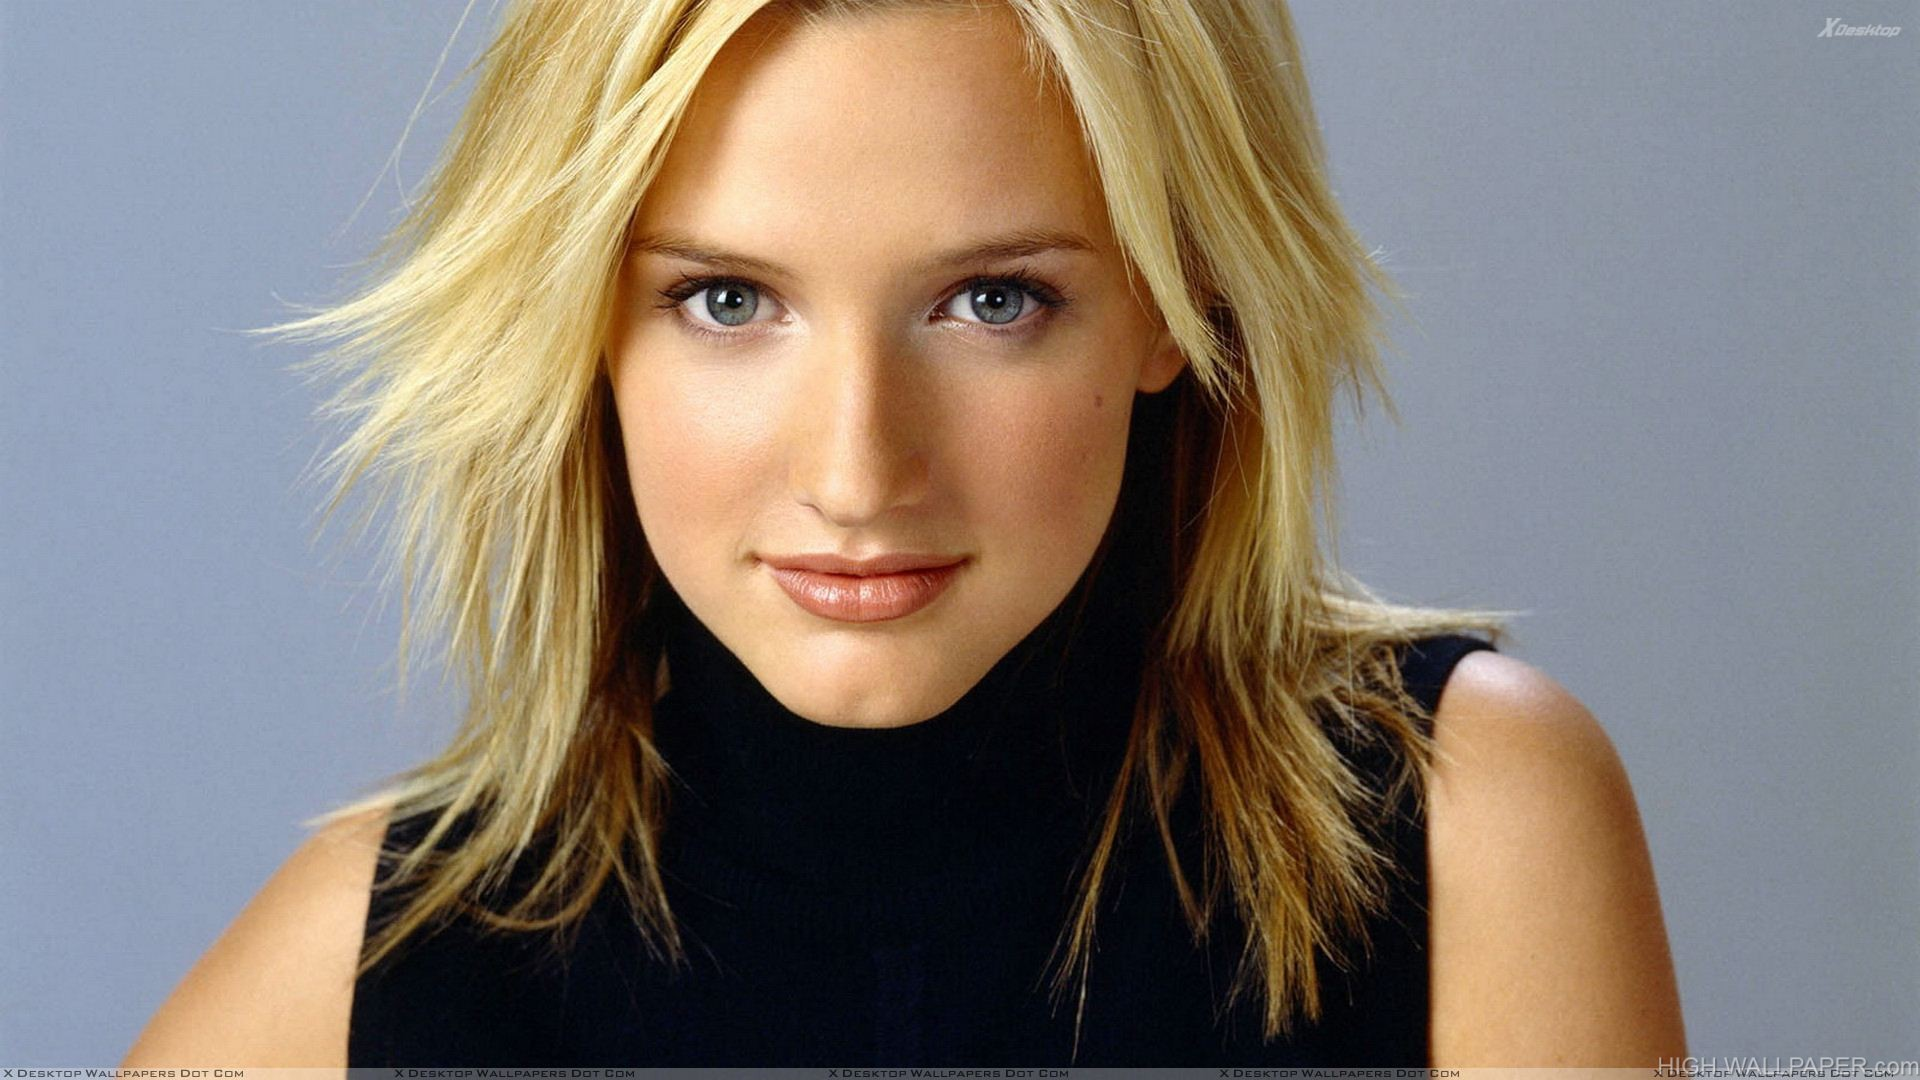 Ashlee Simpson Smiling Cute Face In Black Top